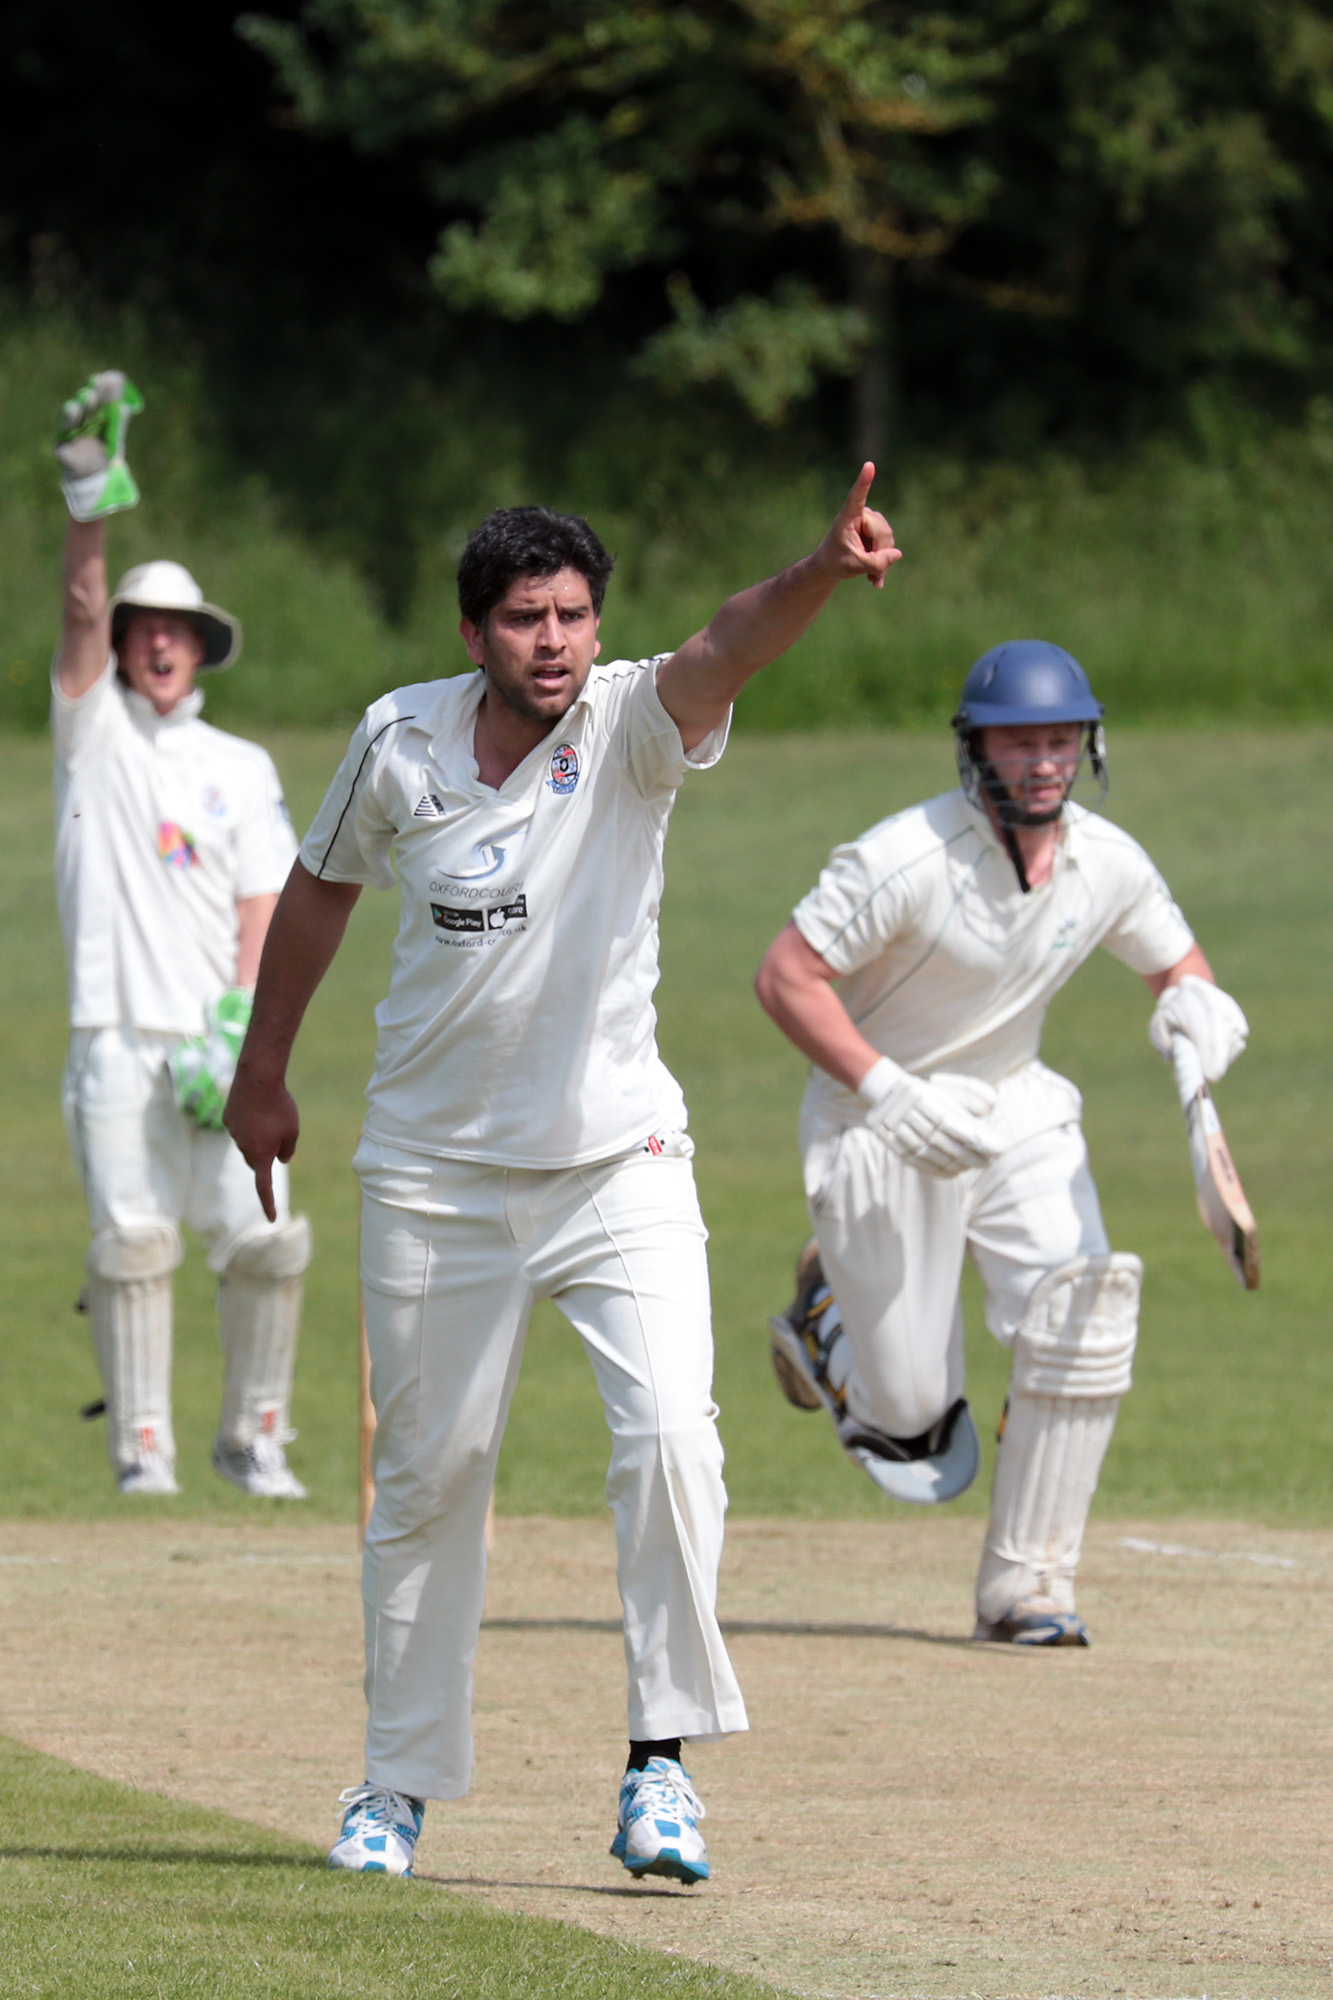 Radley bowler Uddin Naeem and wicket-keeper Peter Davenport appeal for lbw against Combe's Mark Francis in their Division 4 clashPictures: Ric Mellis